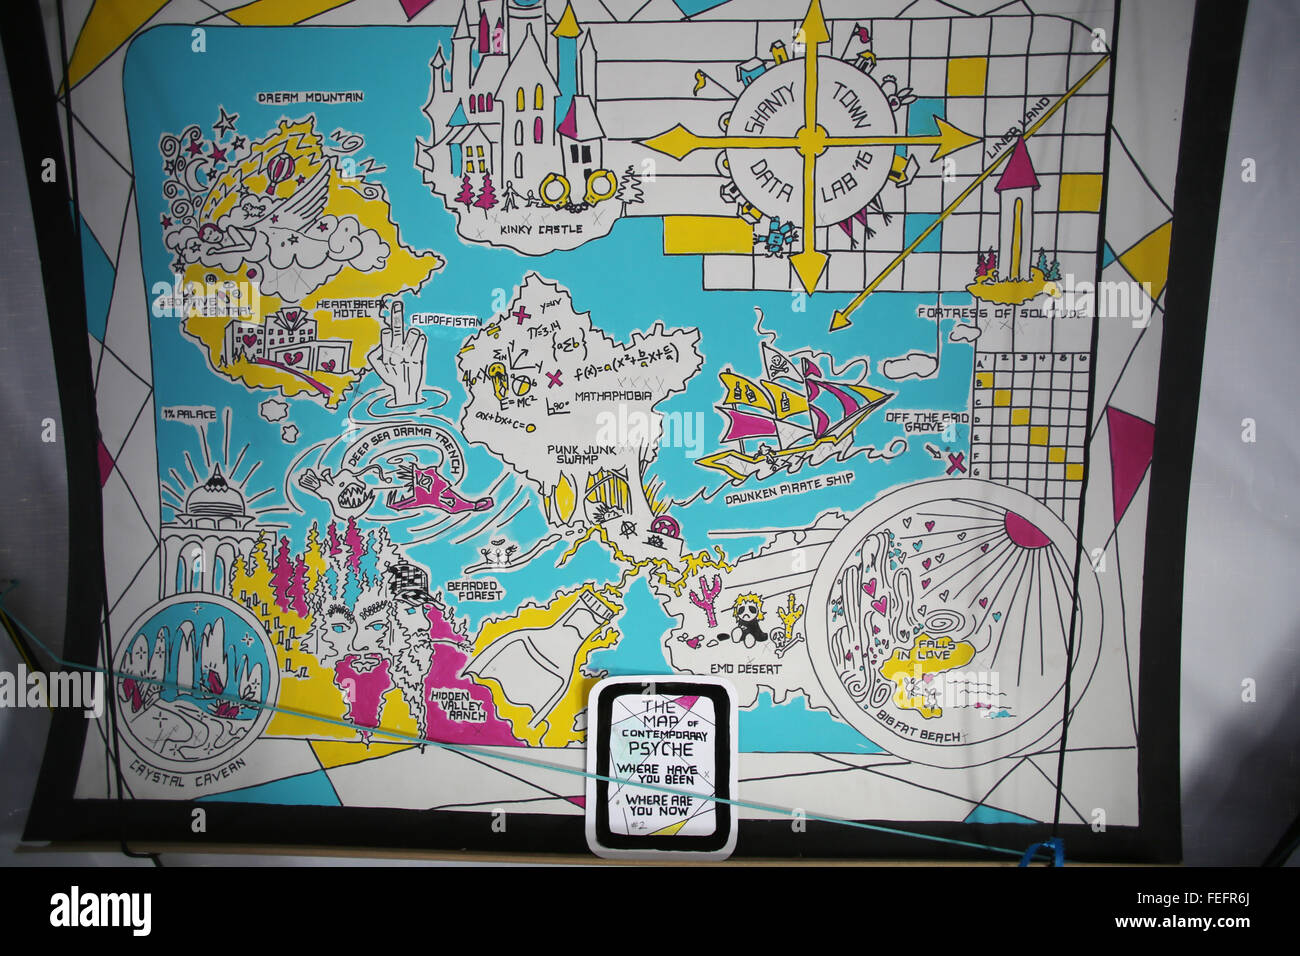 Minneapolis Minnesota Usa 06th Feb 2016 A Funny Map In The Data Lab Shanty One Of The Art Shanties At The Art Shanty Projects On Frozen White Bear